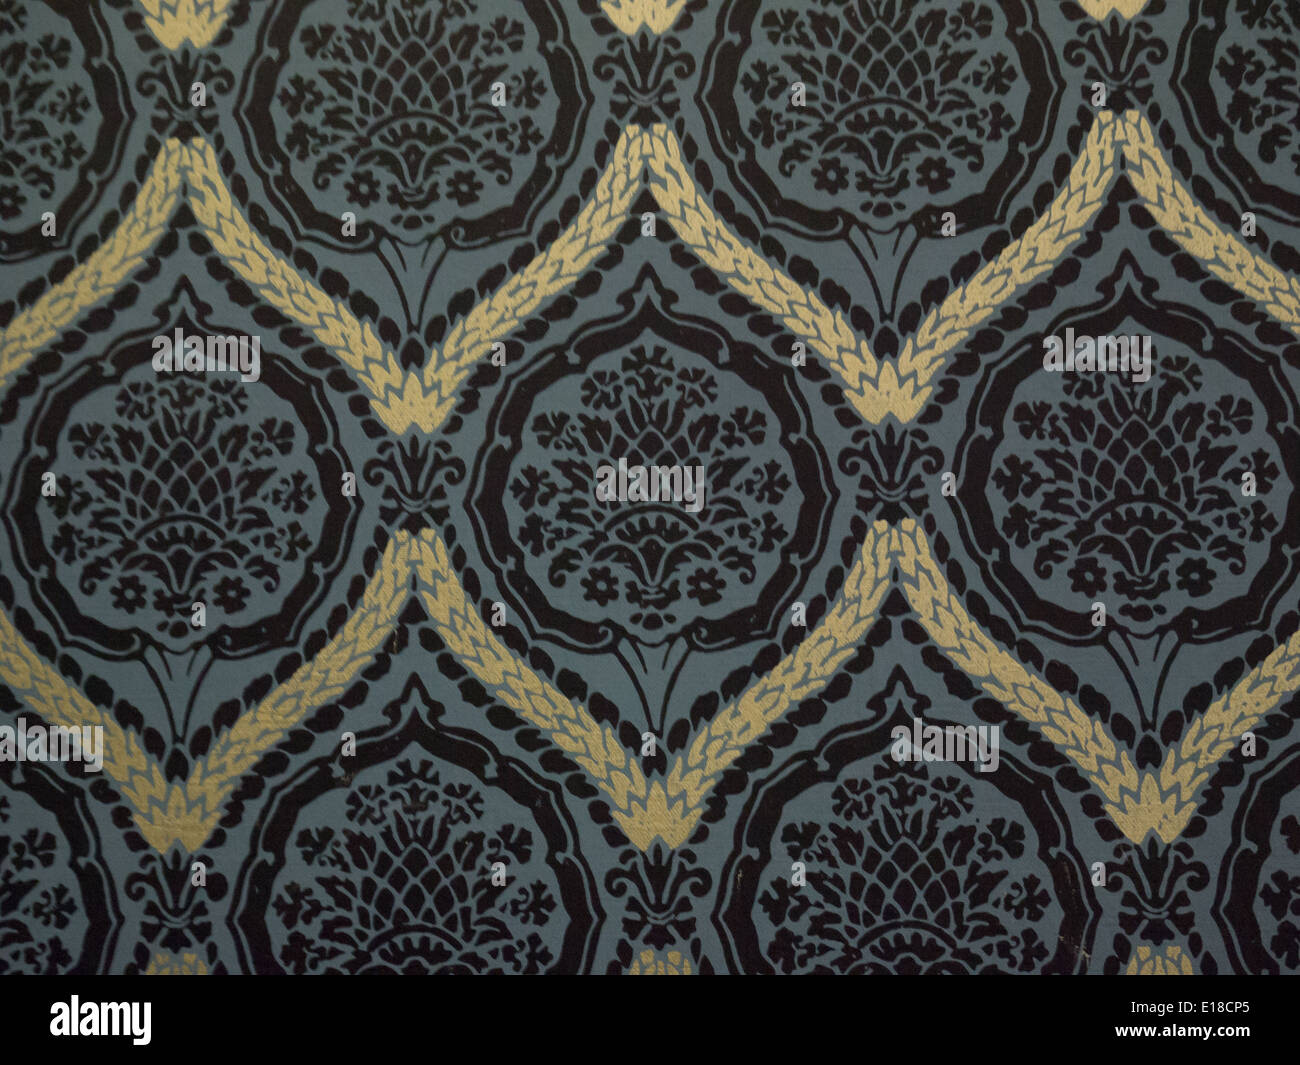 vintage wallpaper symmetric pattern blue white black - Stock Image